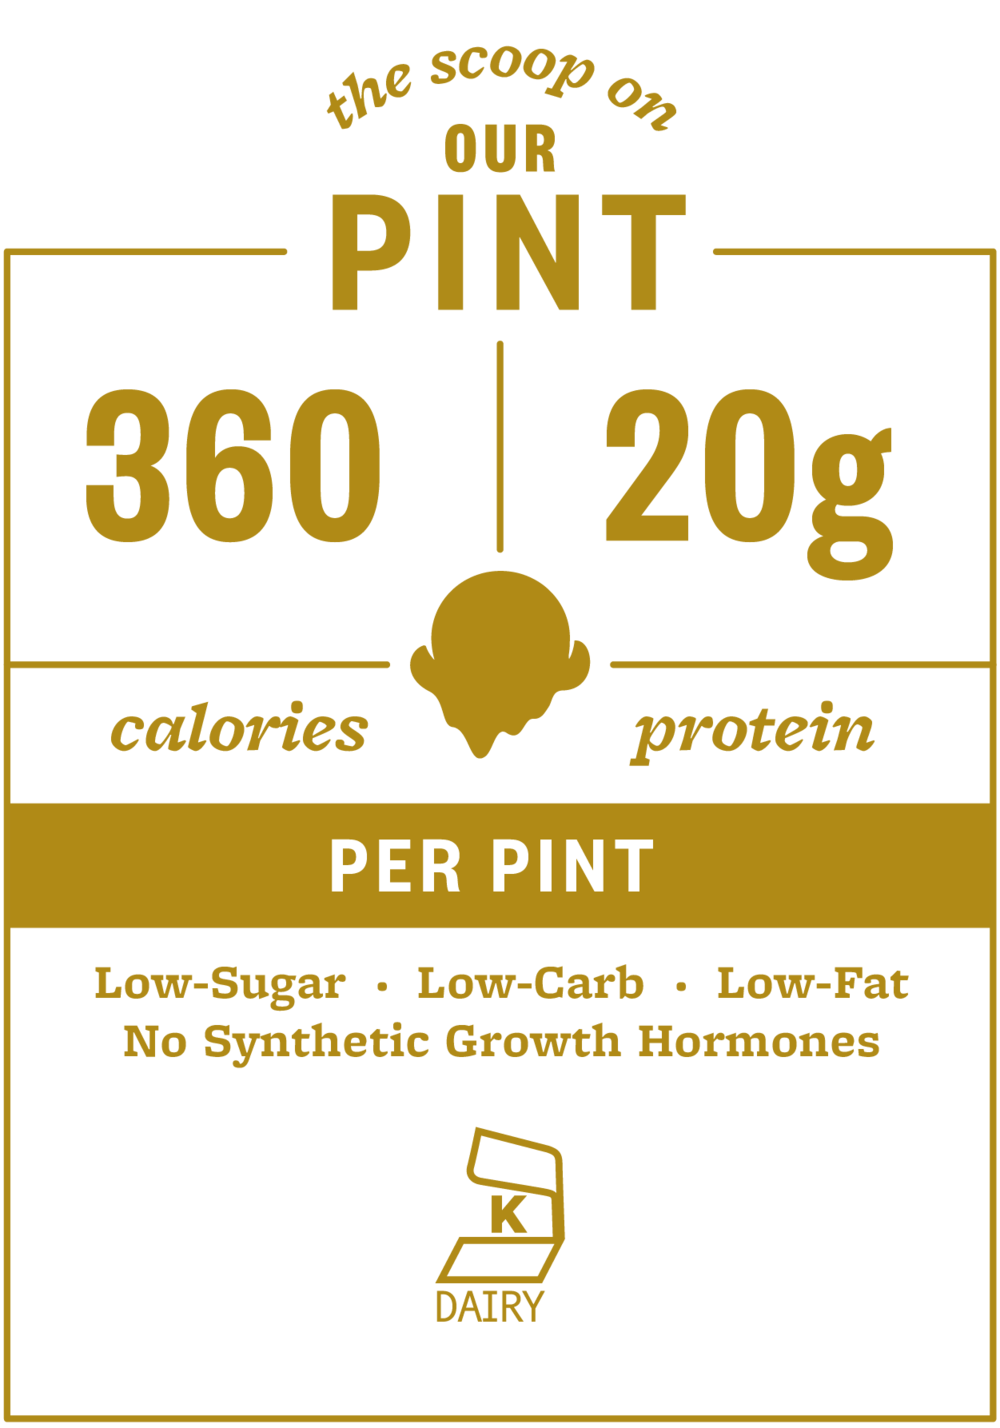 HT_Flavors_Scoop-Facts_170320_360cal-20g df.png